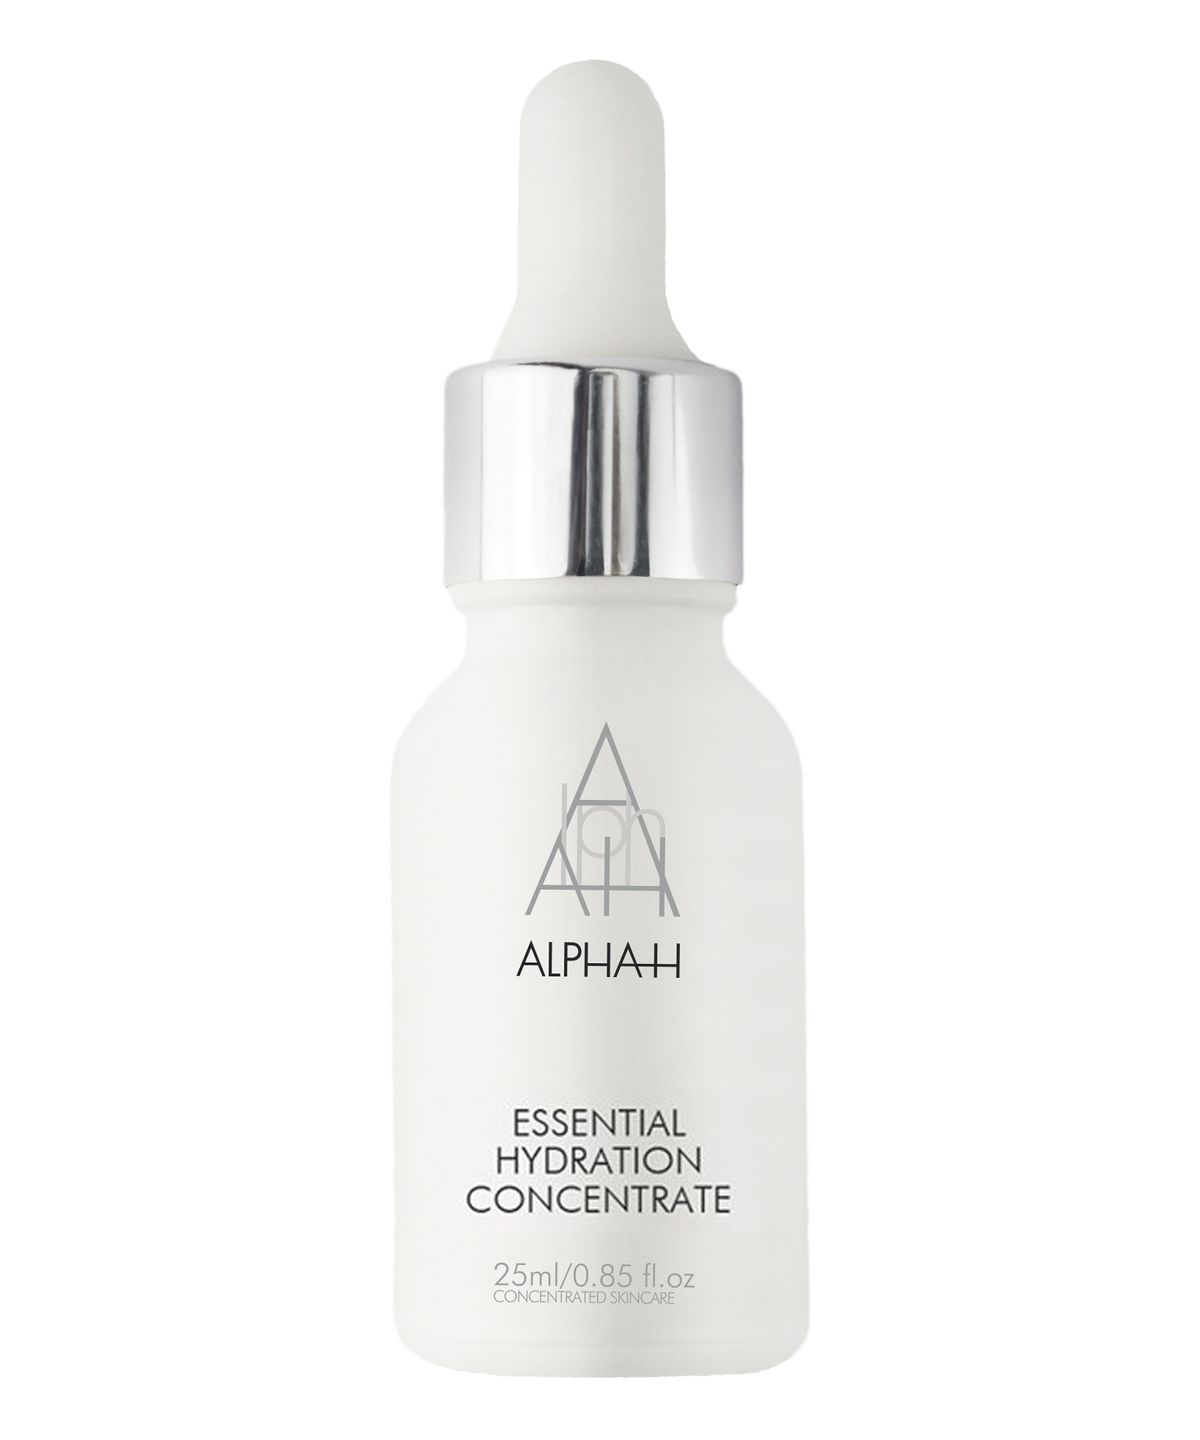 Alpha-H Essential Hydration Concentrate